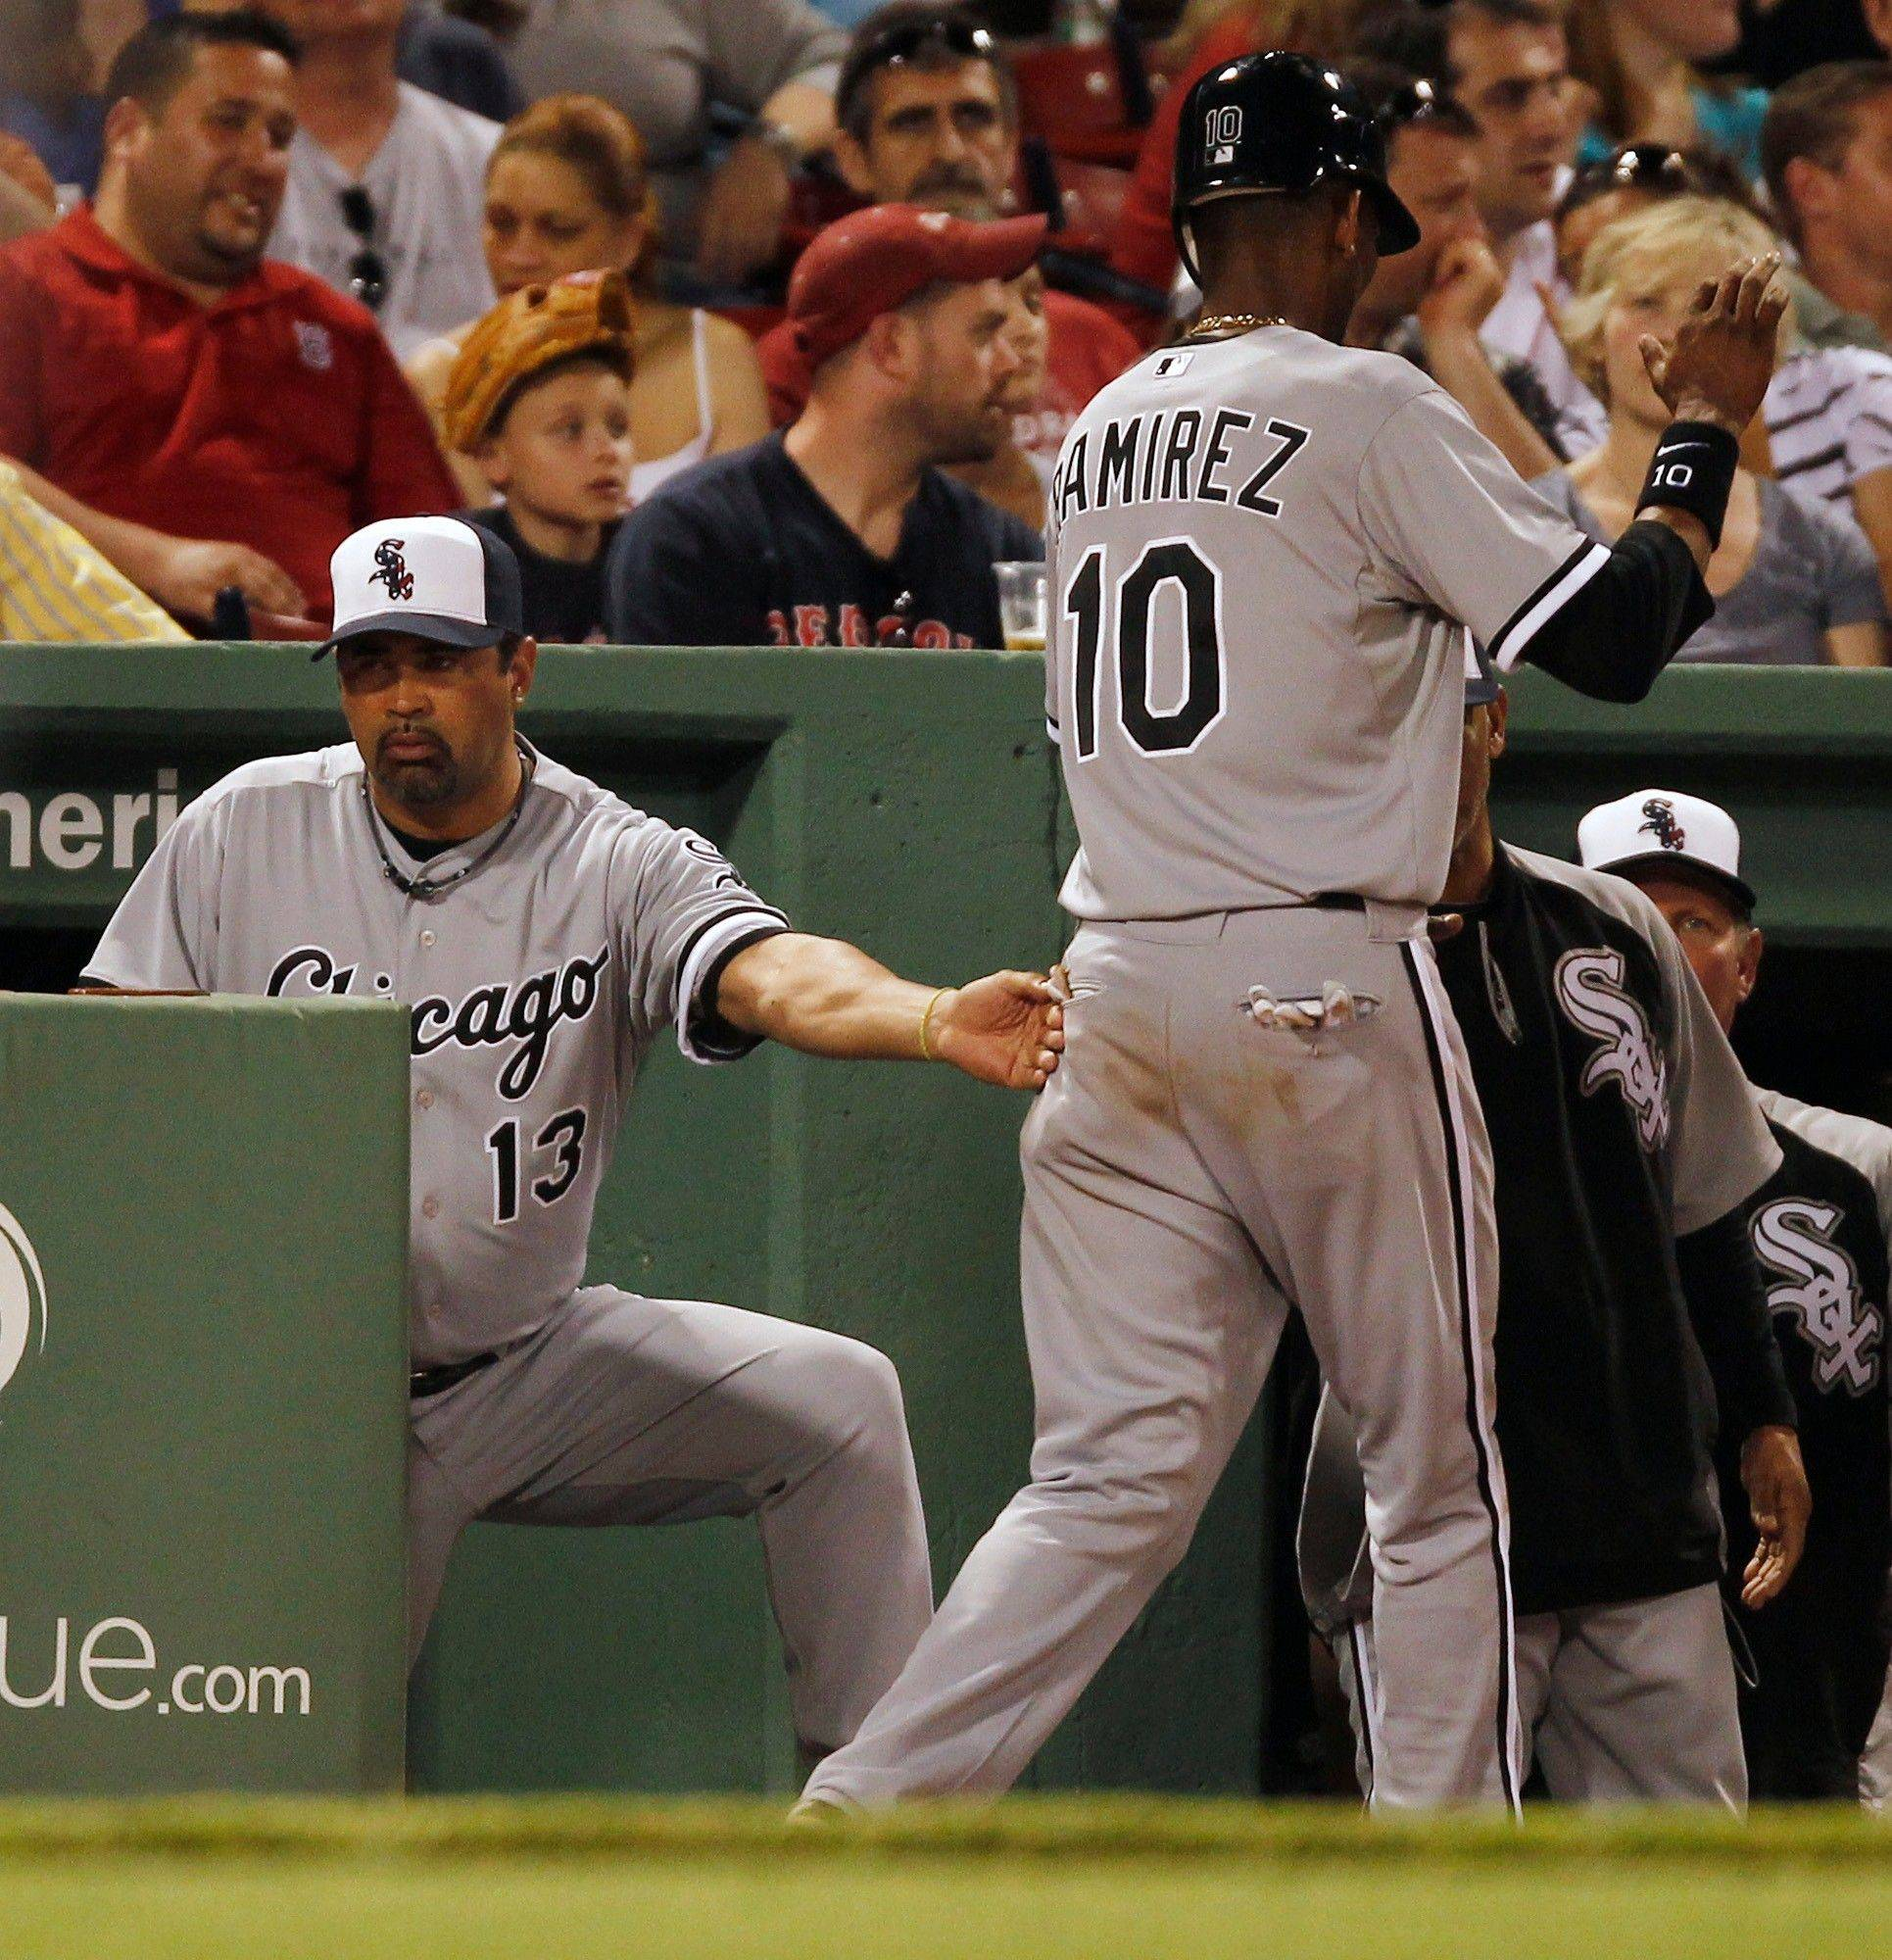 The White Sox' Alexei Ramirez gets a pat on the back from manager Ozzie Guillen after scoring on a 2-run single by Carlos Quentin in the sixth inning Monday.